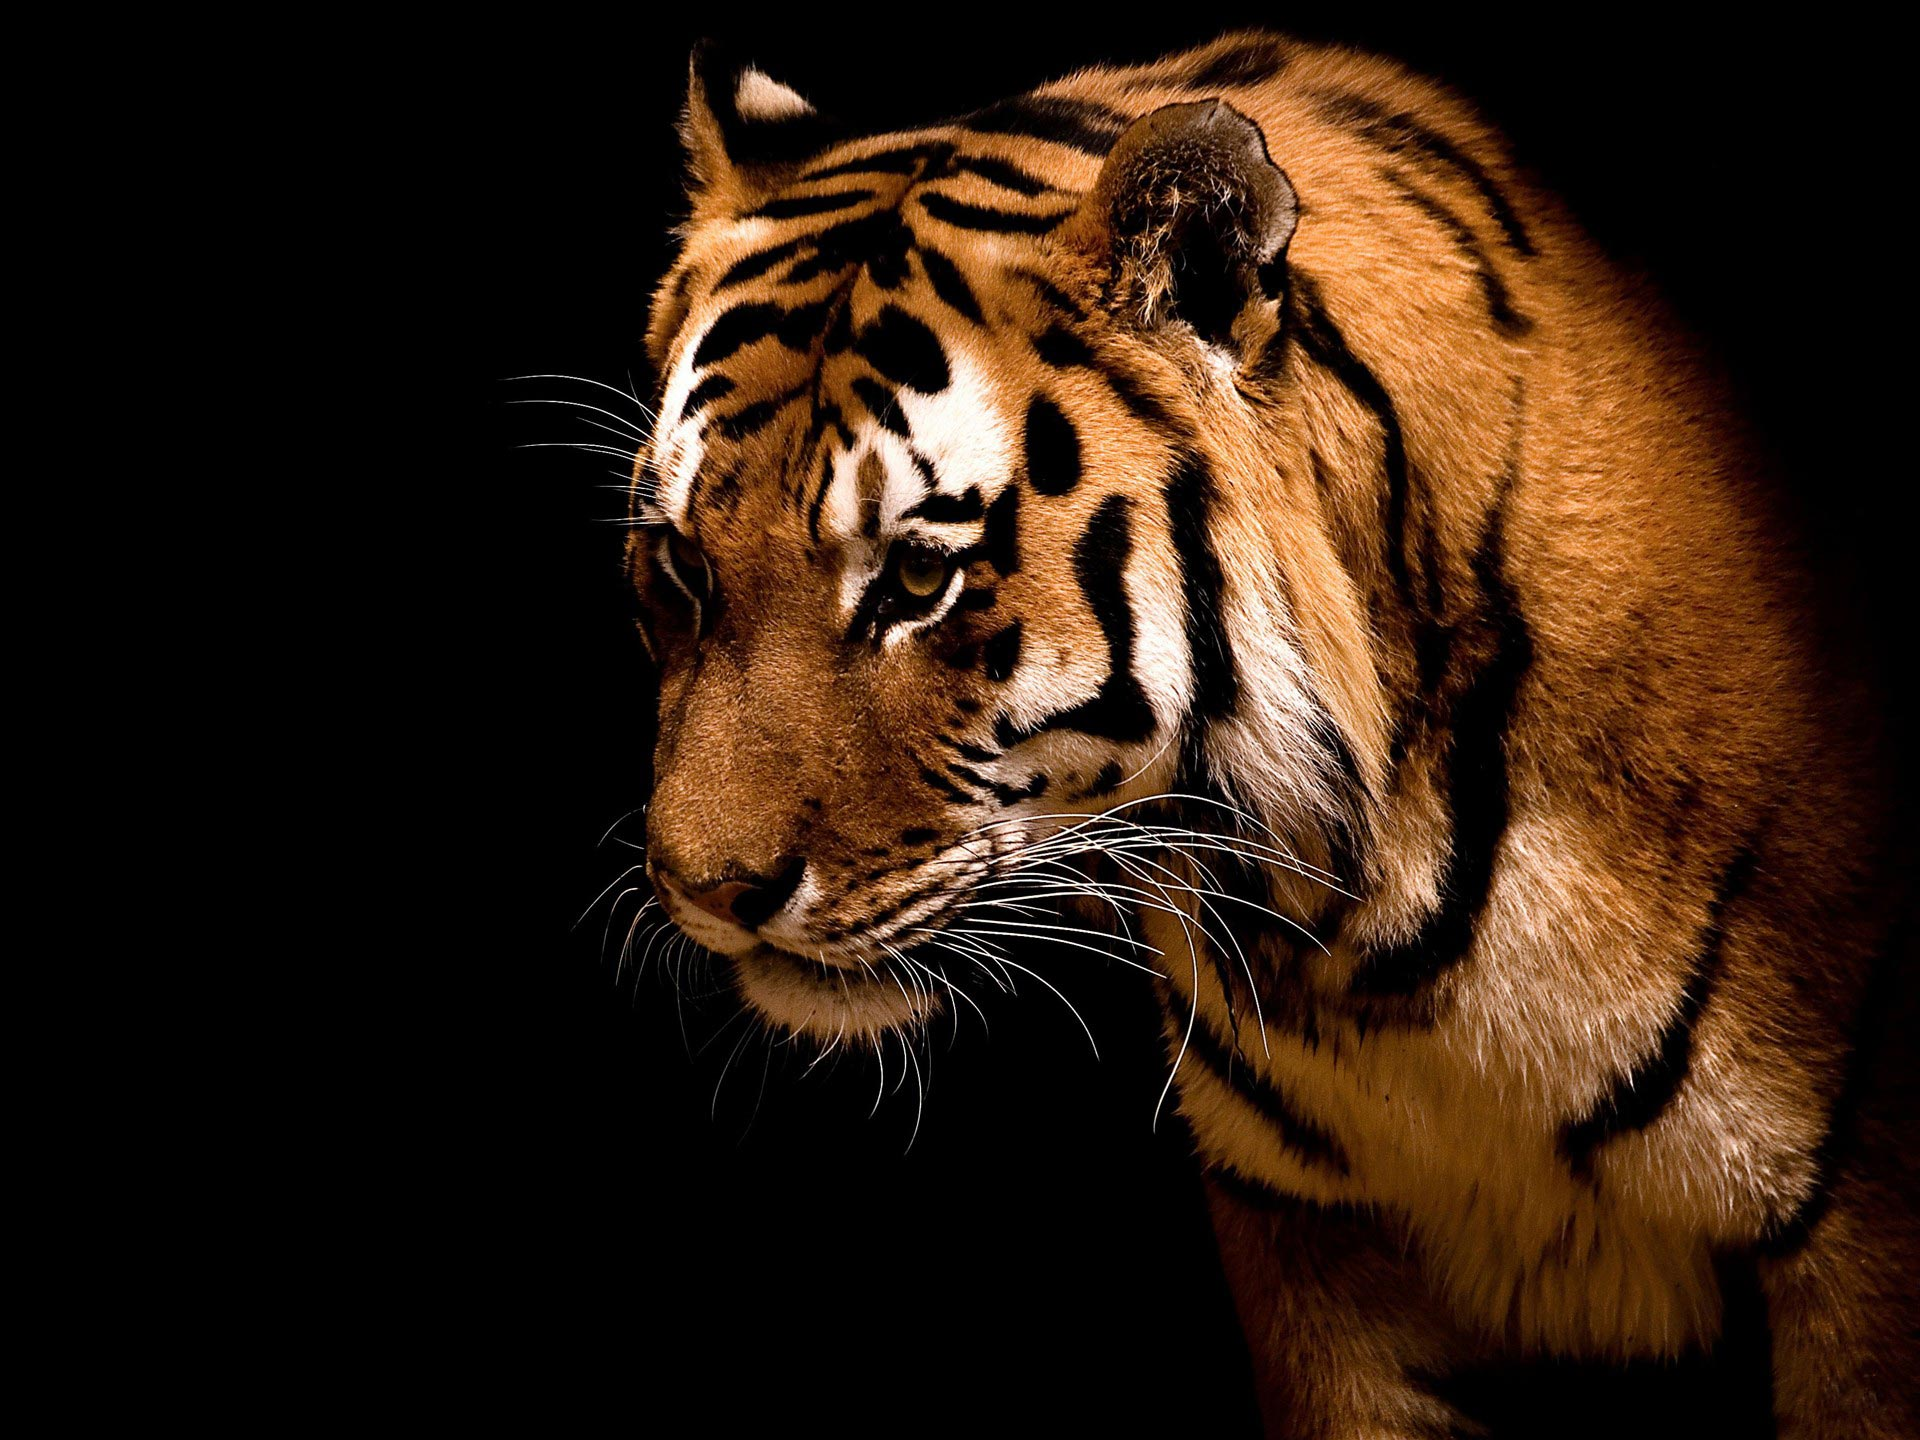 tiger hd wallpaper for desktop #14